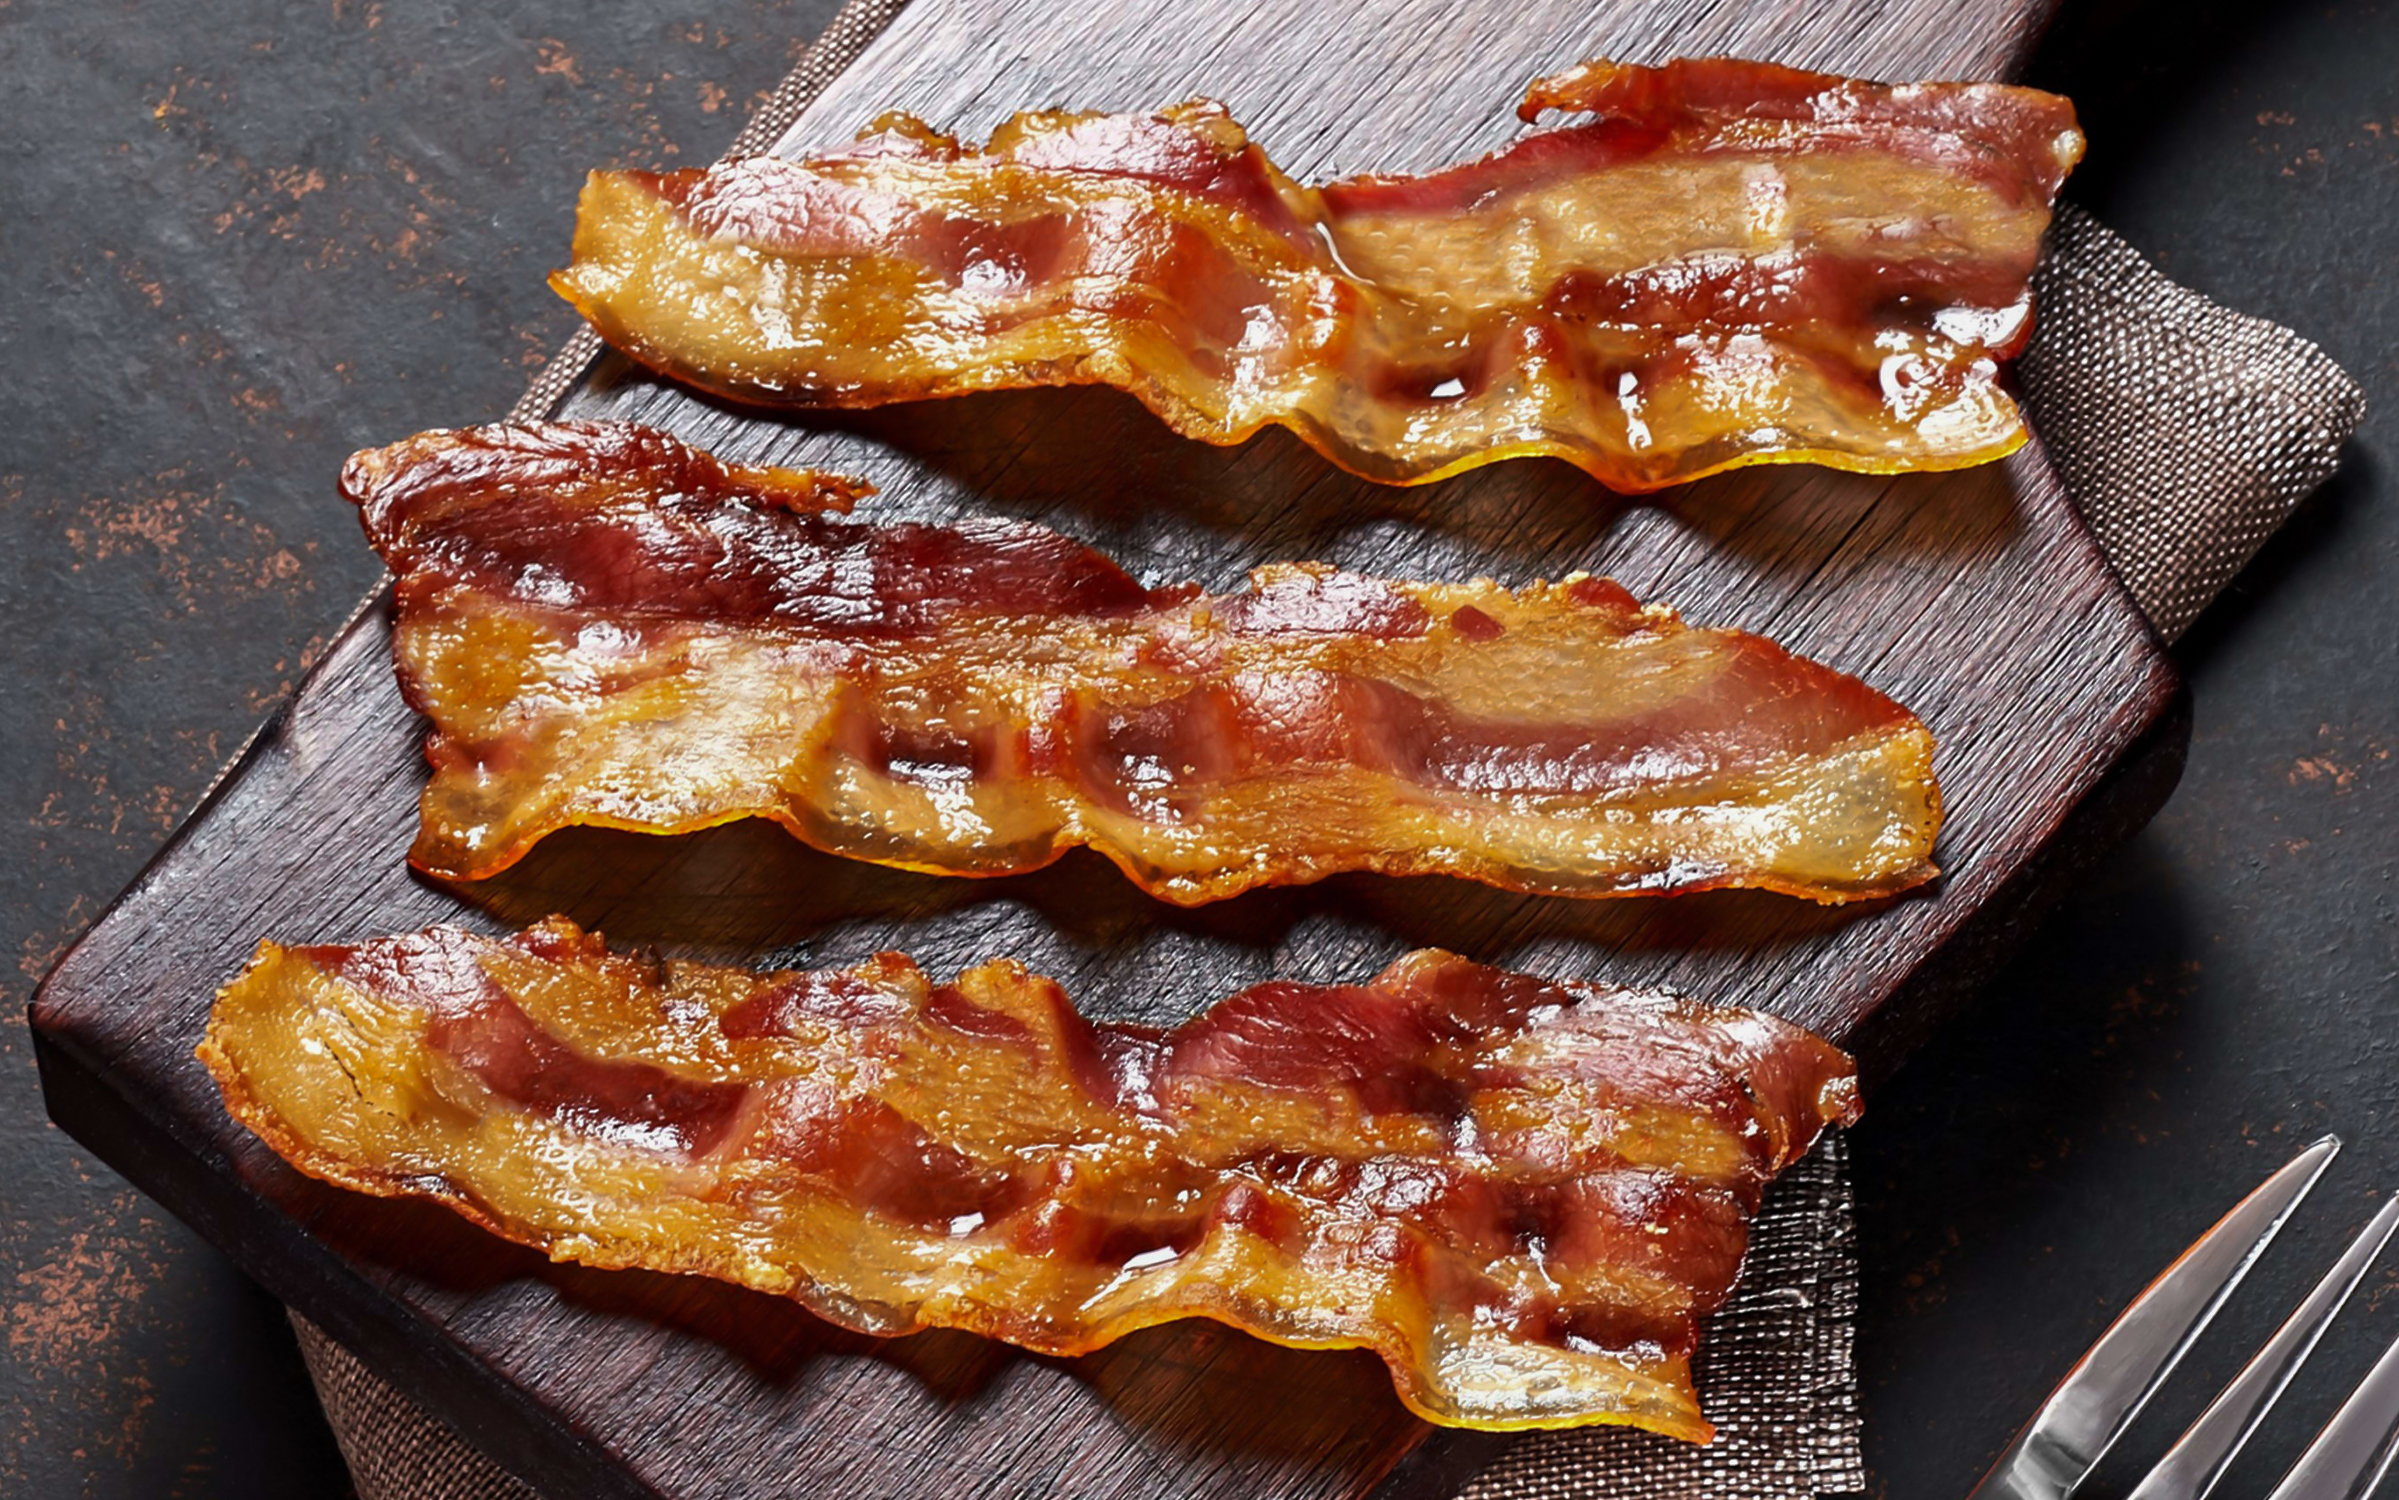 The 12 Best Bacon Brands